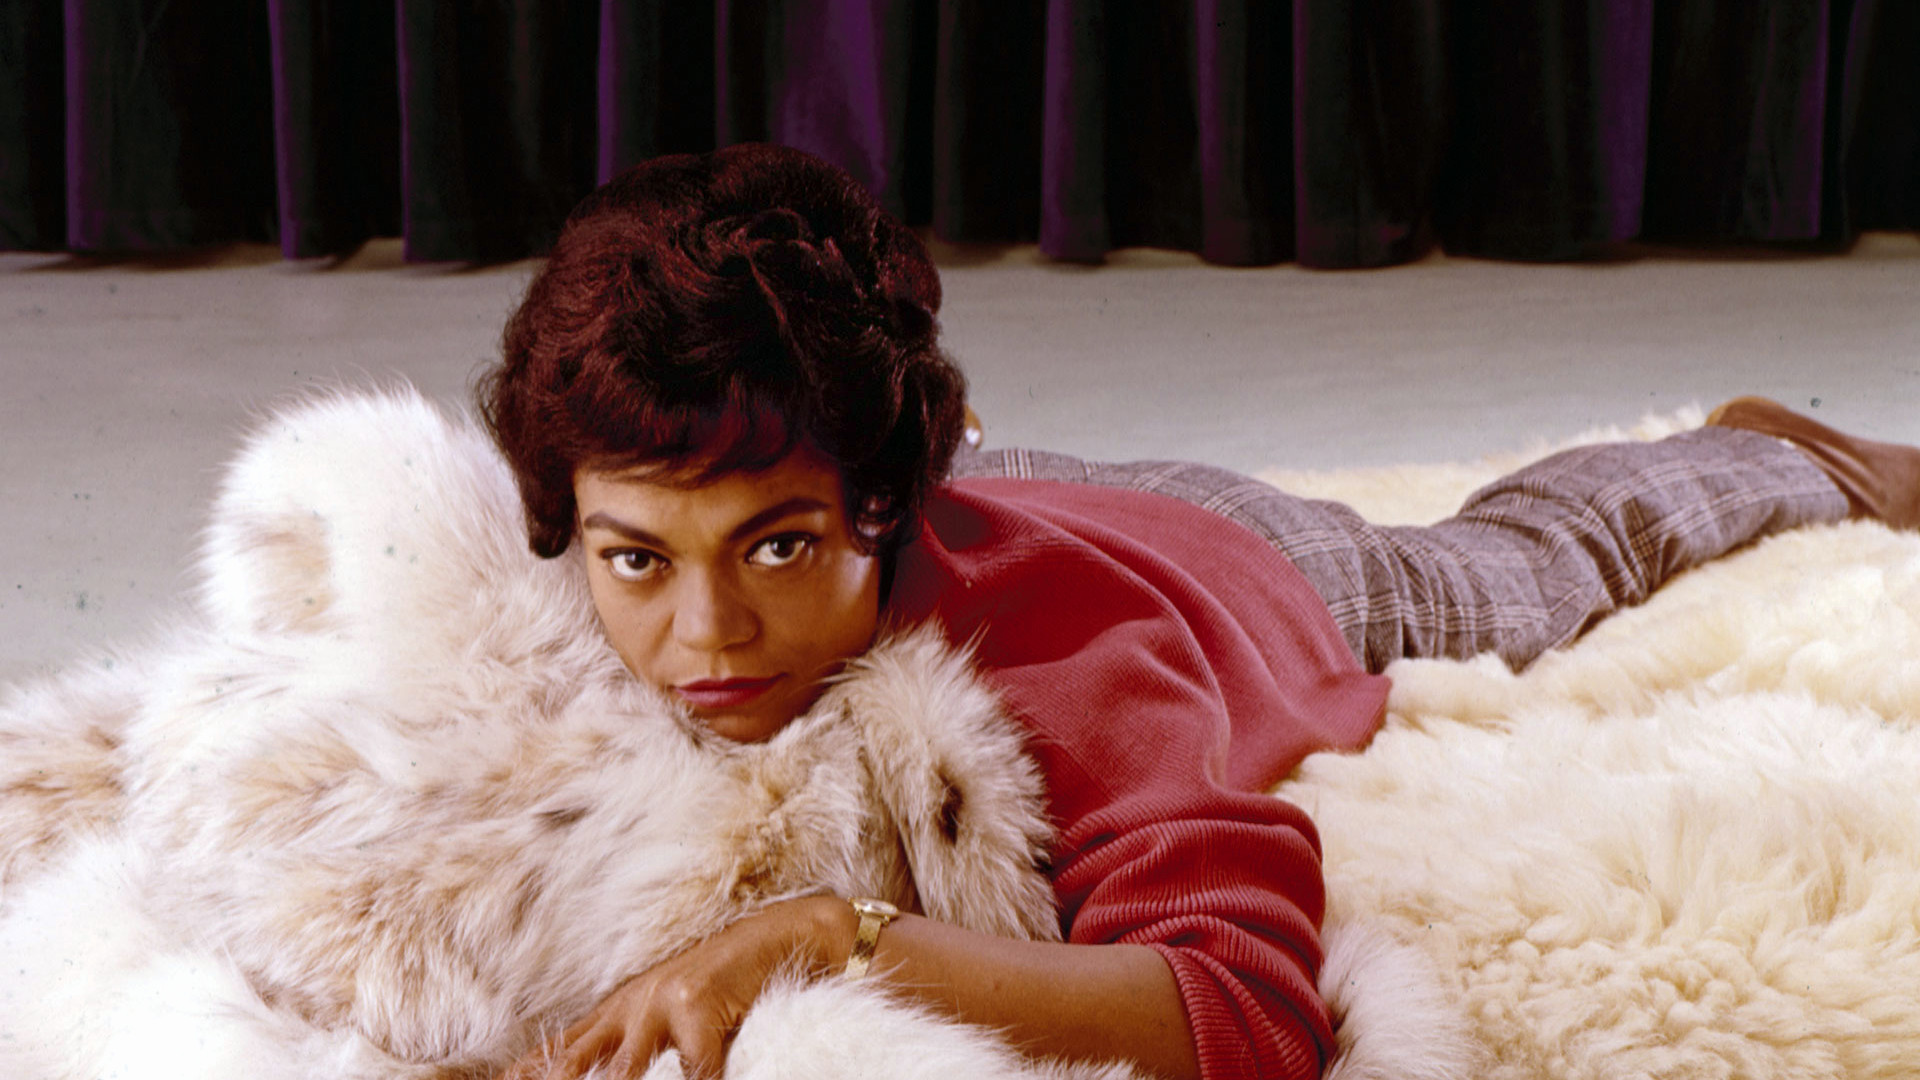 3 eartha kitt gif on gifer by mabei.